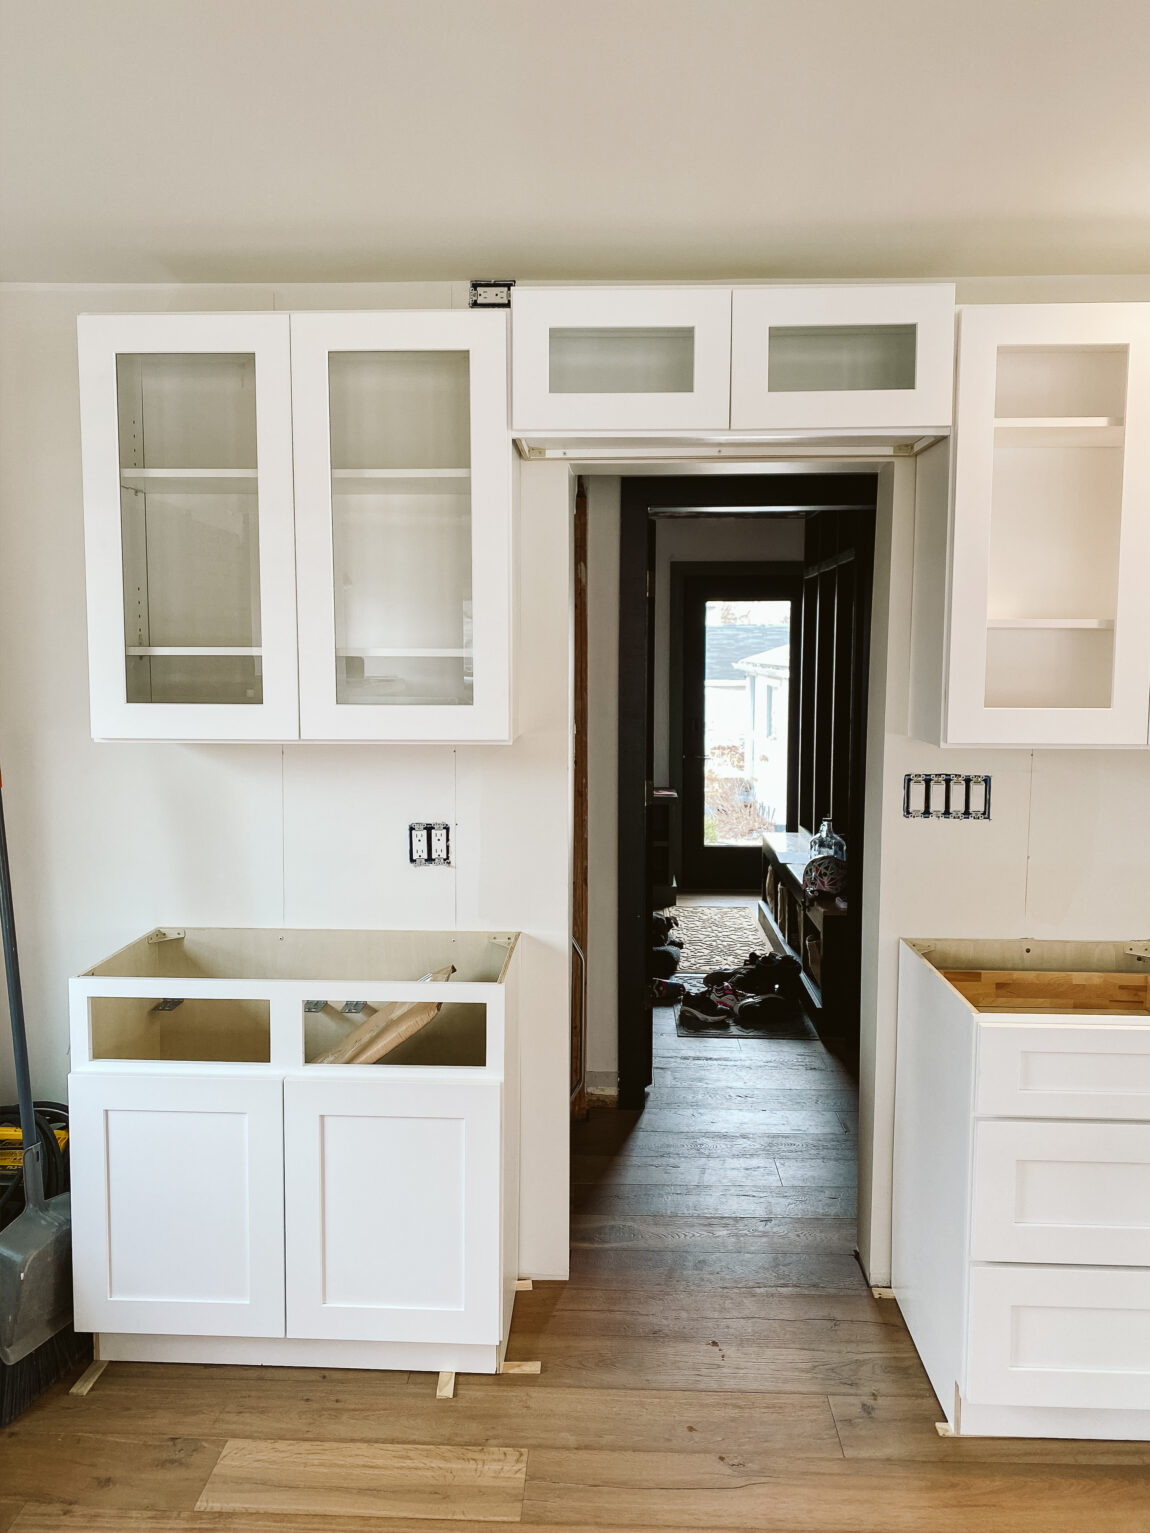 How To Properly Install And Connect Kitchen Cabinets Clark Aldine